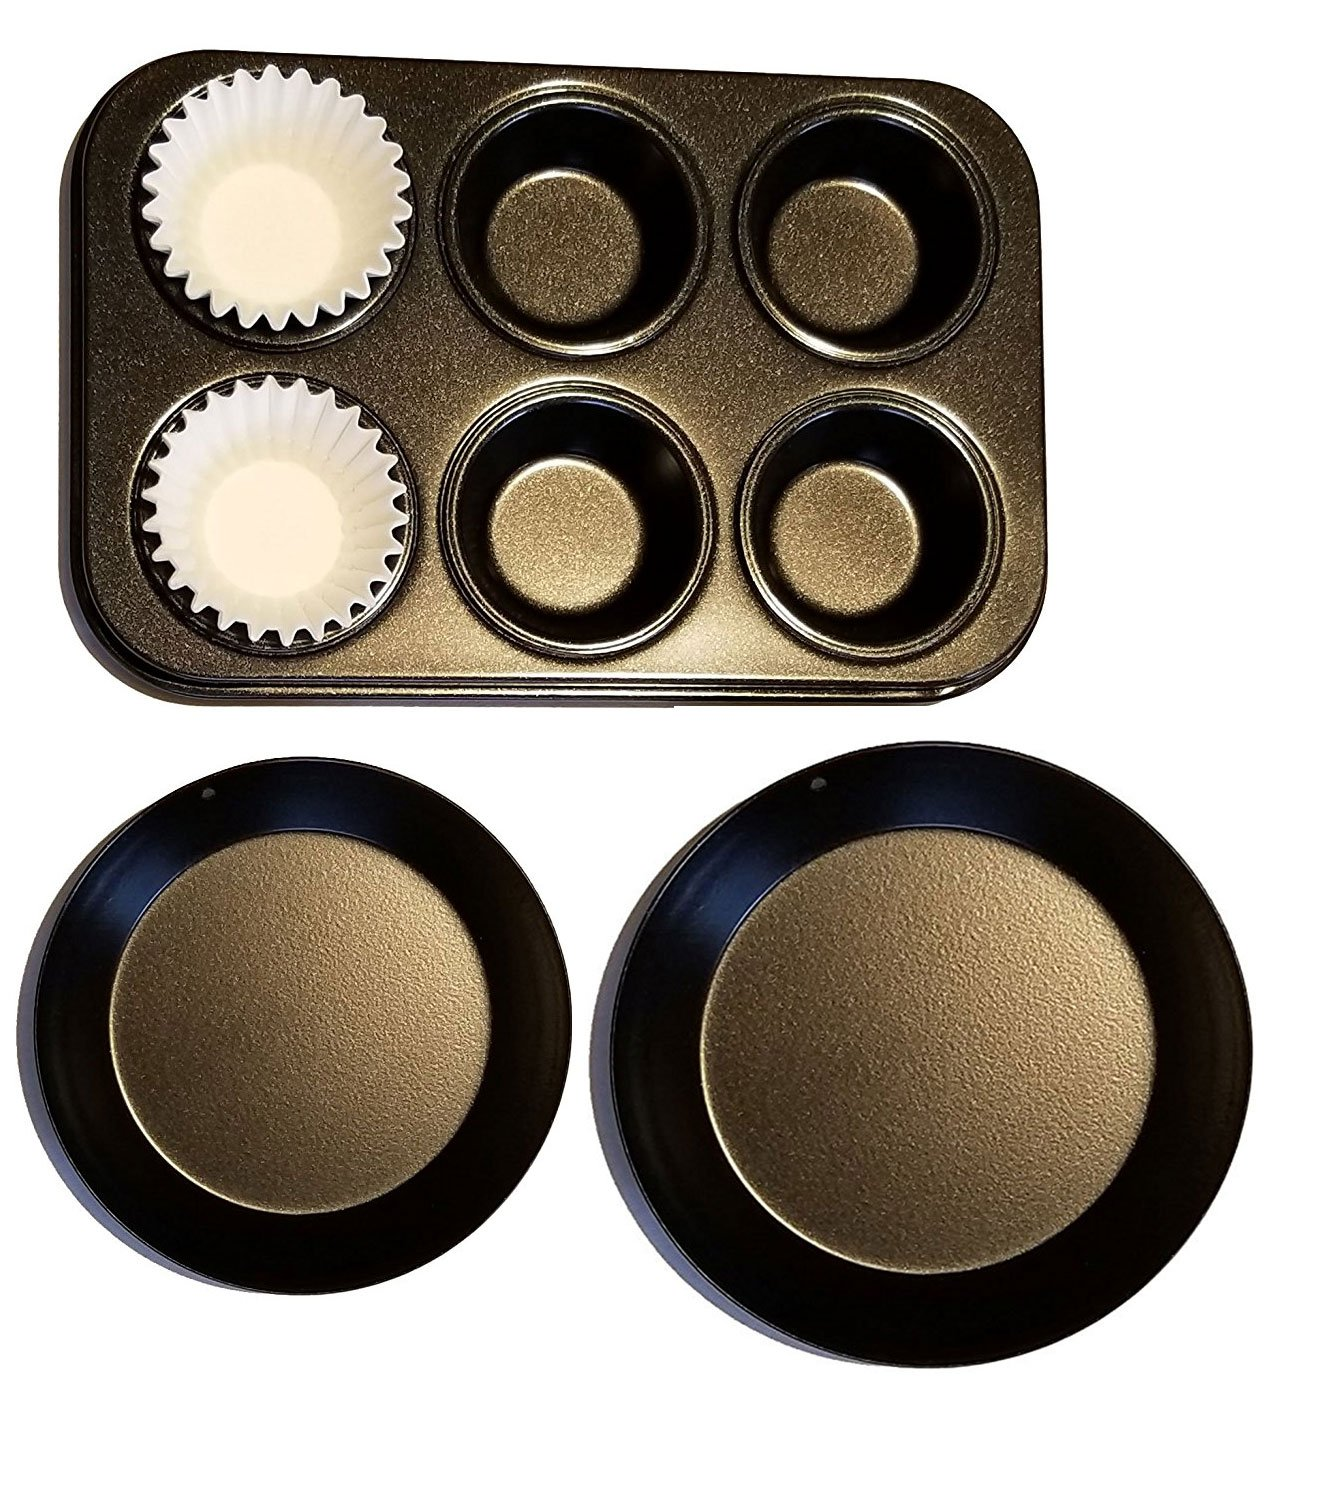 E&B Easy Bake Oven Extra Pan Set of 3 Replacements Non Stick Pans for Toy Ovens Cupcake pan and 25 Papers by E&B